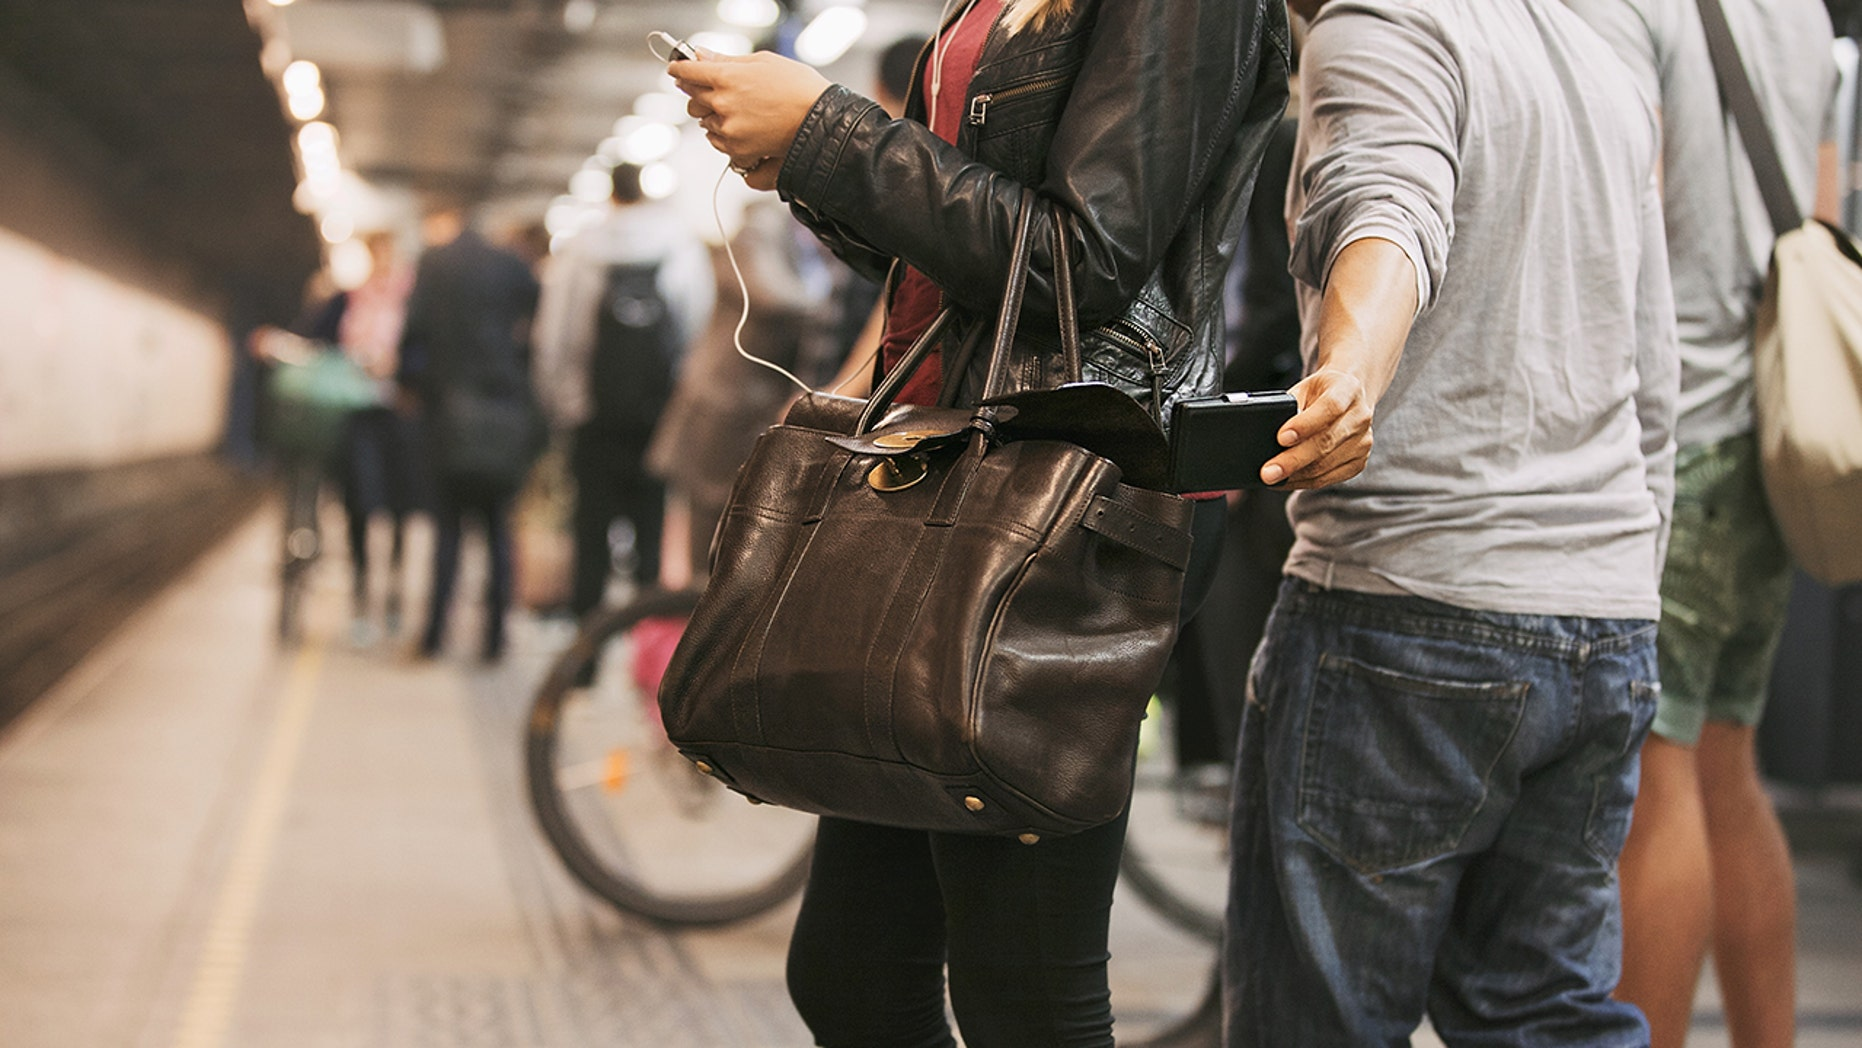 Some scammers all all-too-eager to separate distracted tourists from their belongings.